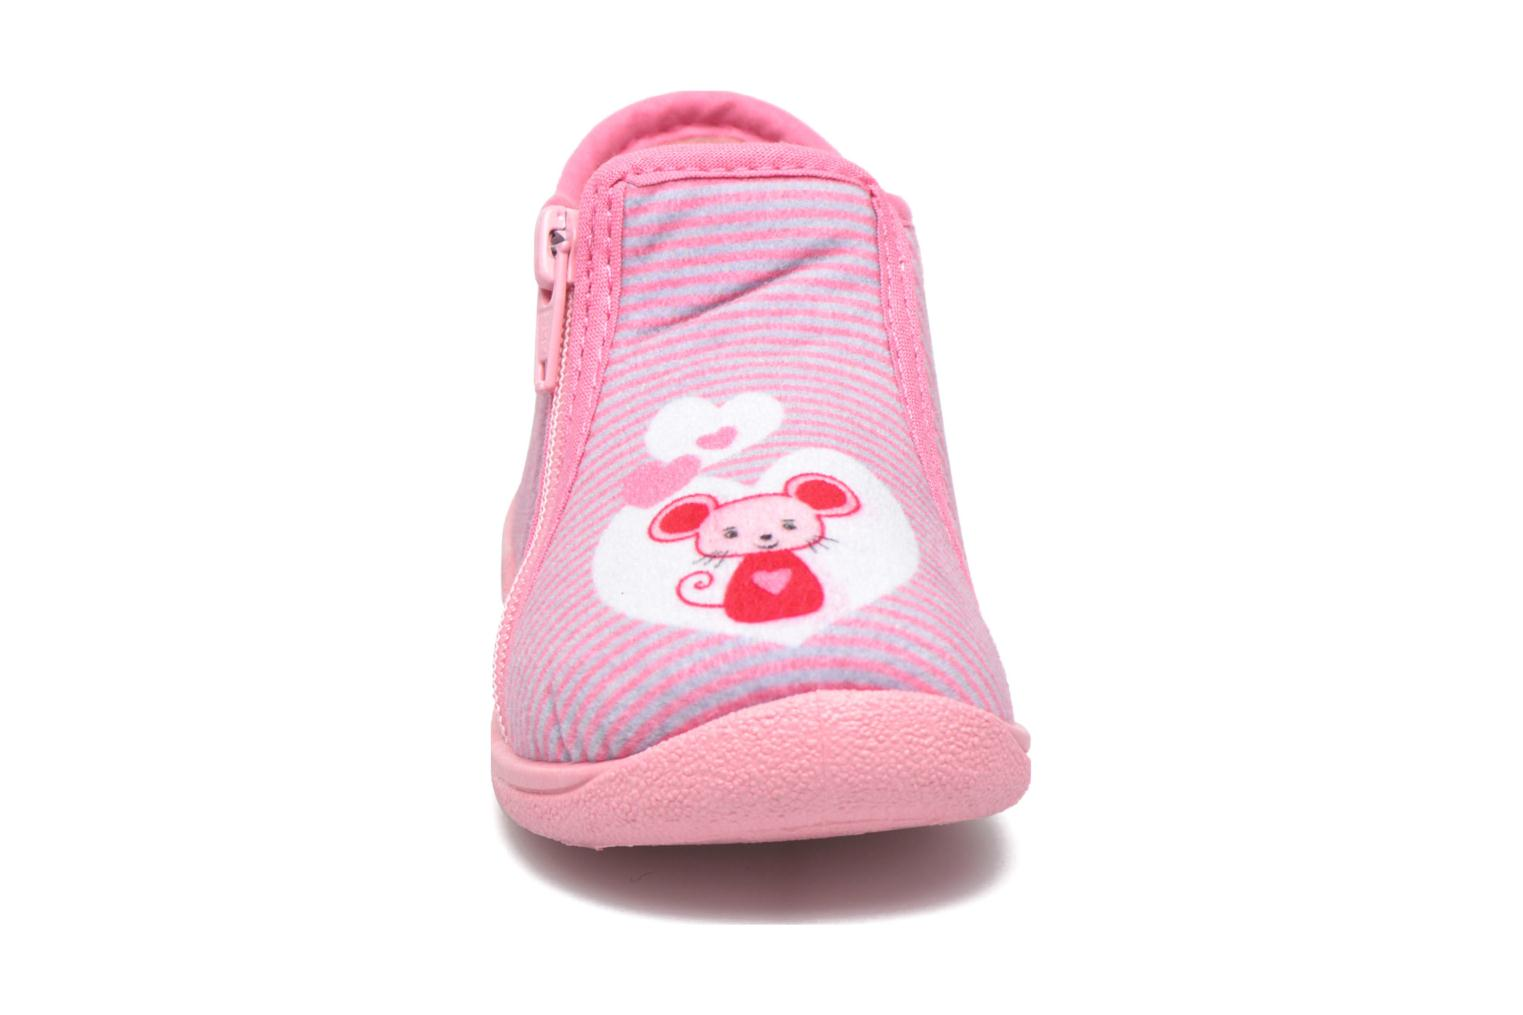 Chaussons Rondinaud GESSY Rose vue portées chaussures